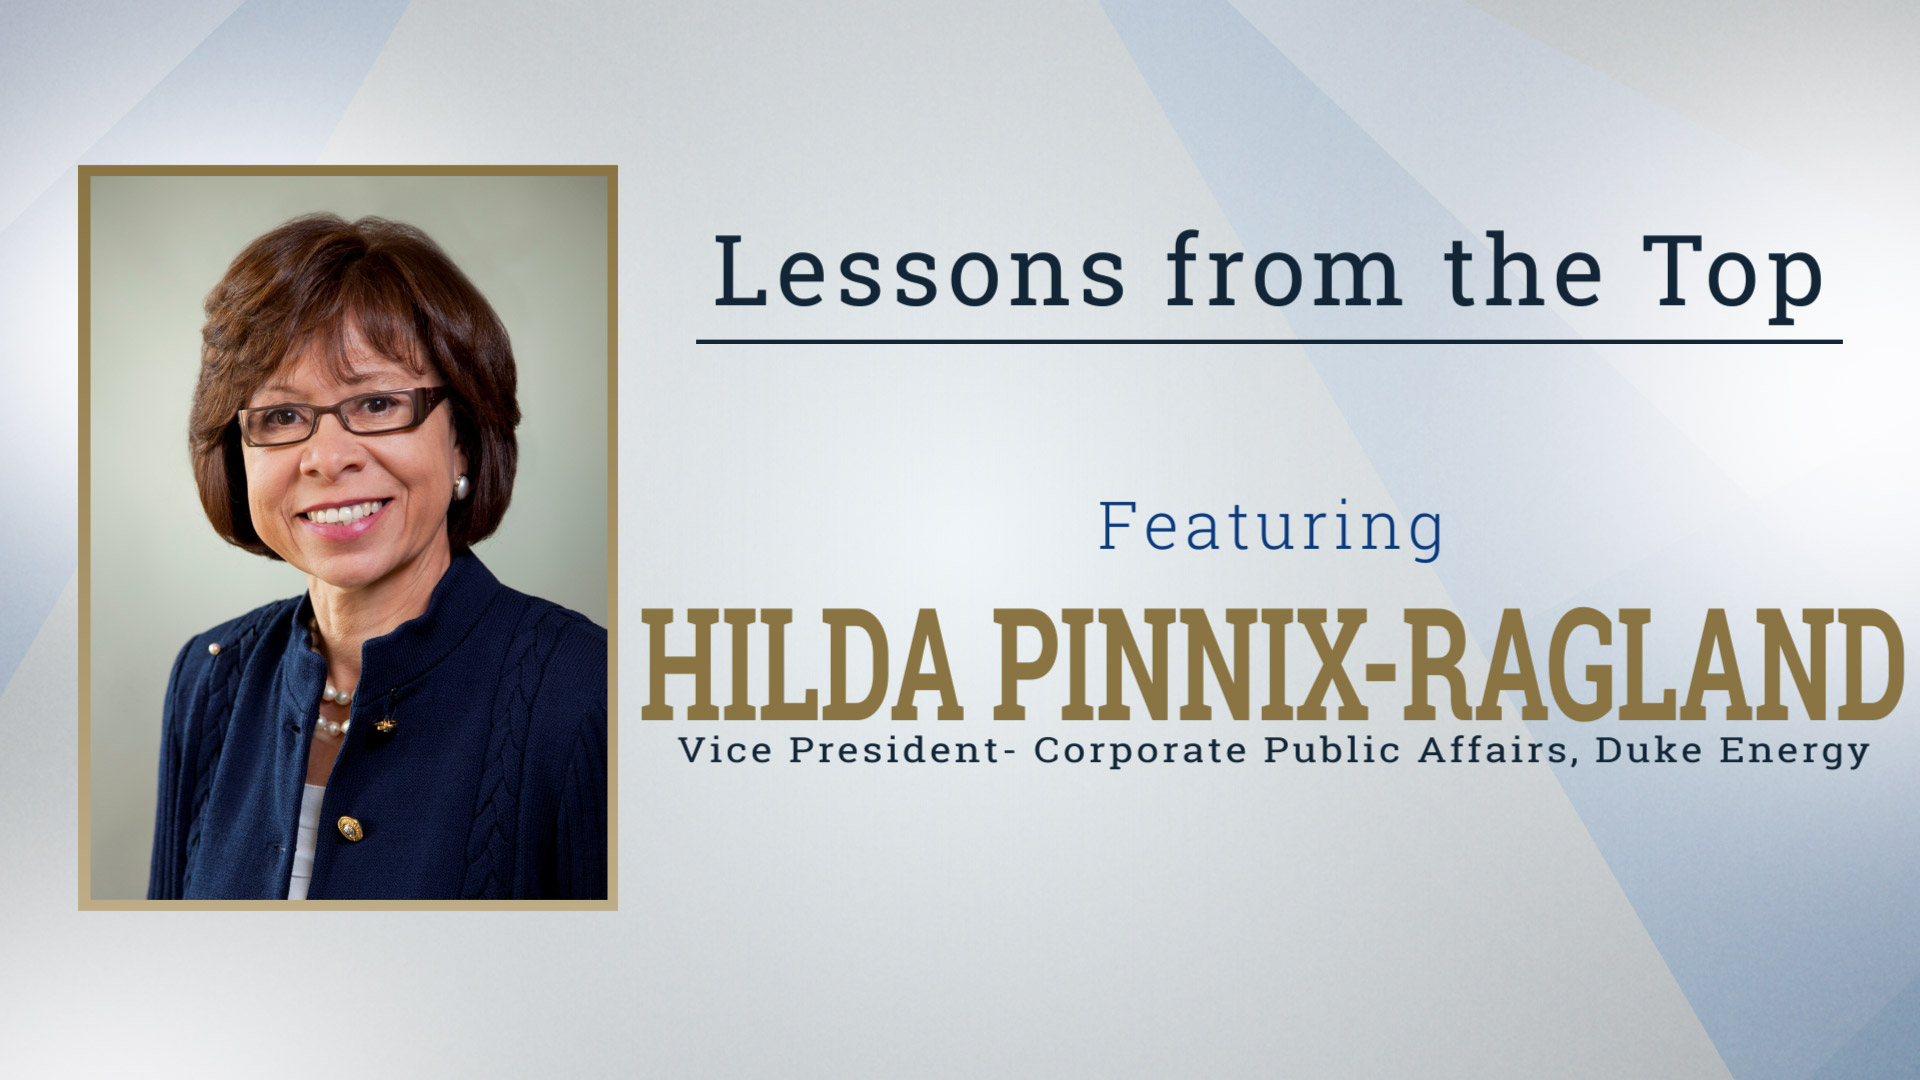 Lessons from the Top Featuring Hilda Pinnix-Ragland